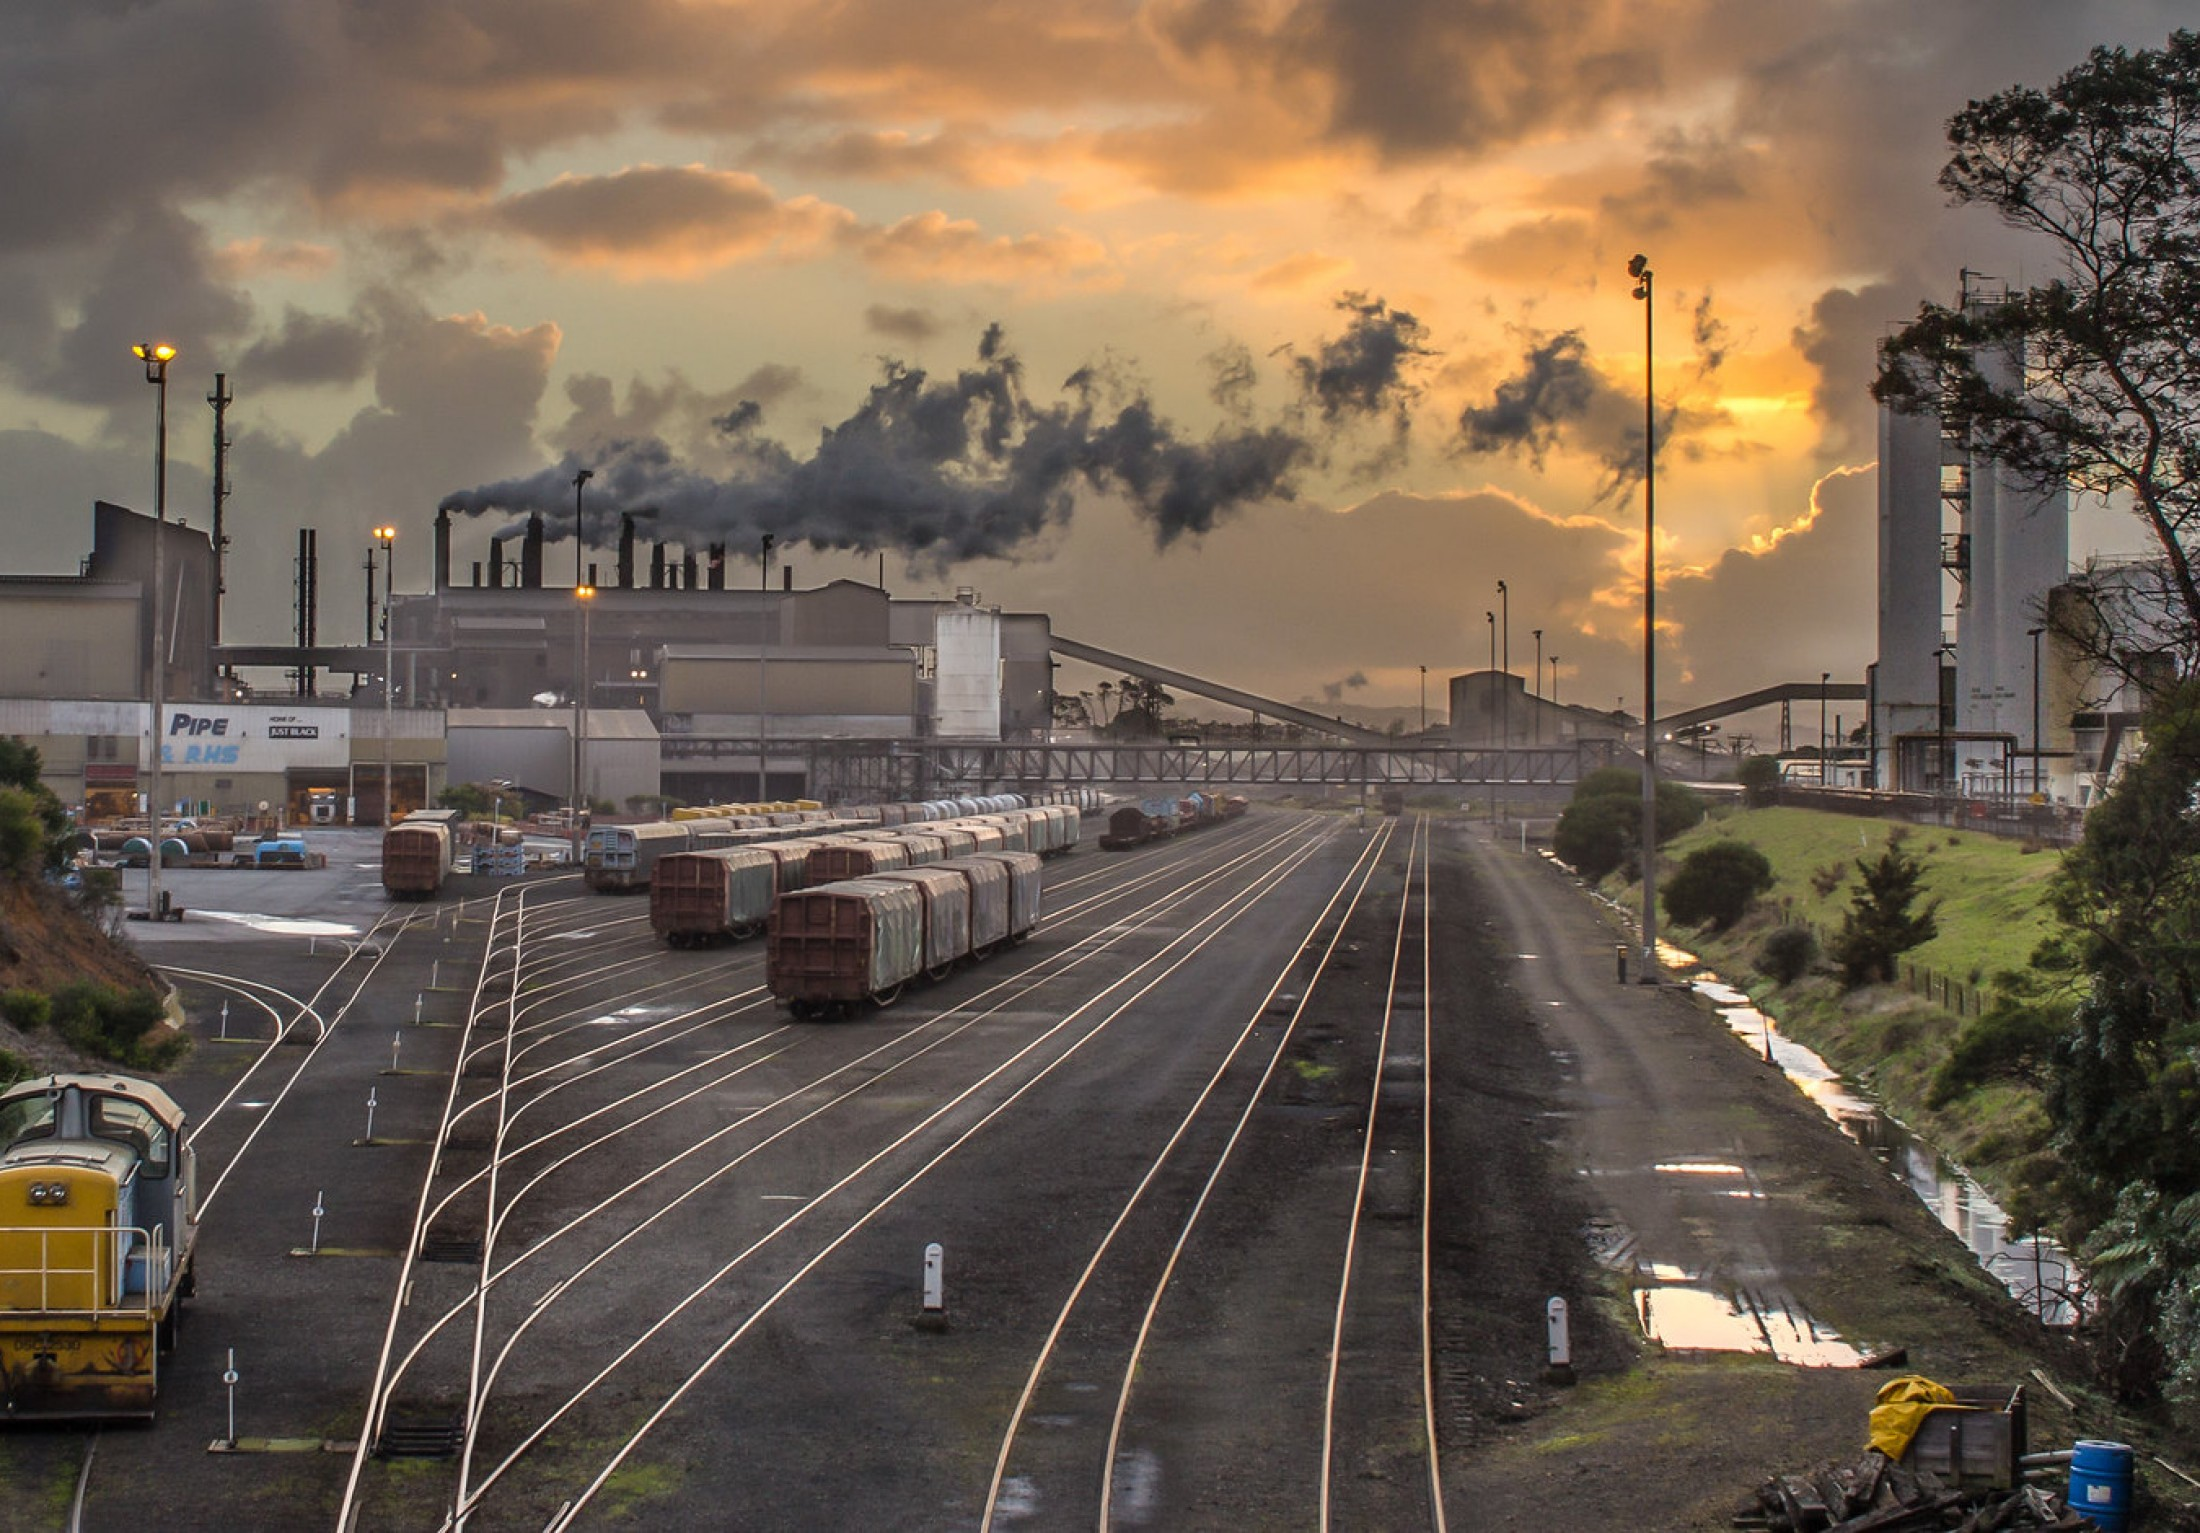 Glenbrook Steel Mill, near Auckland NZ